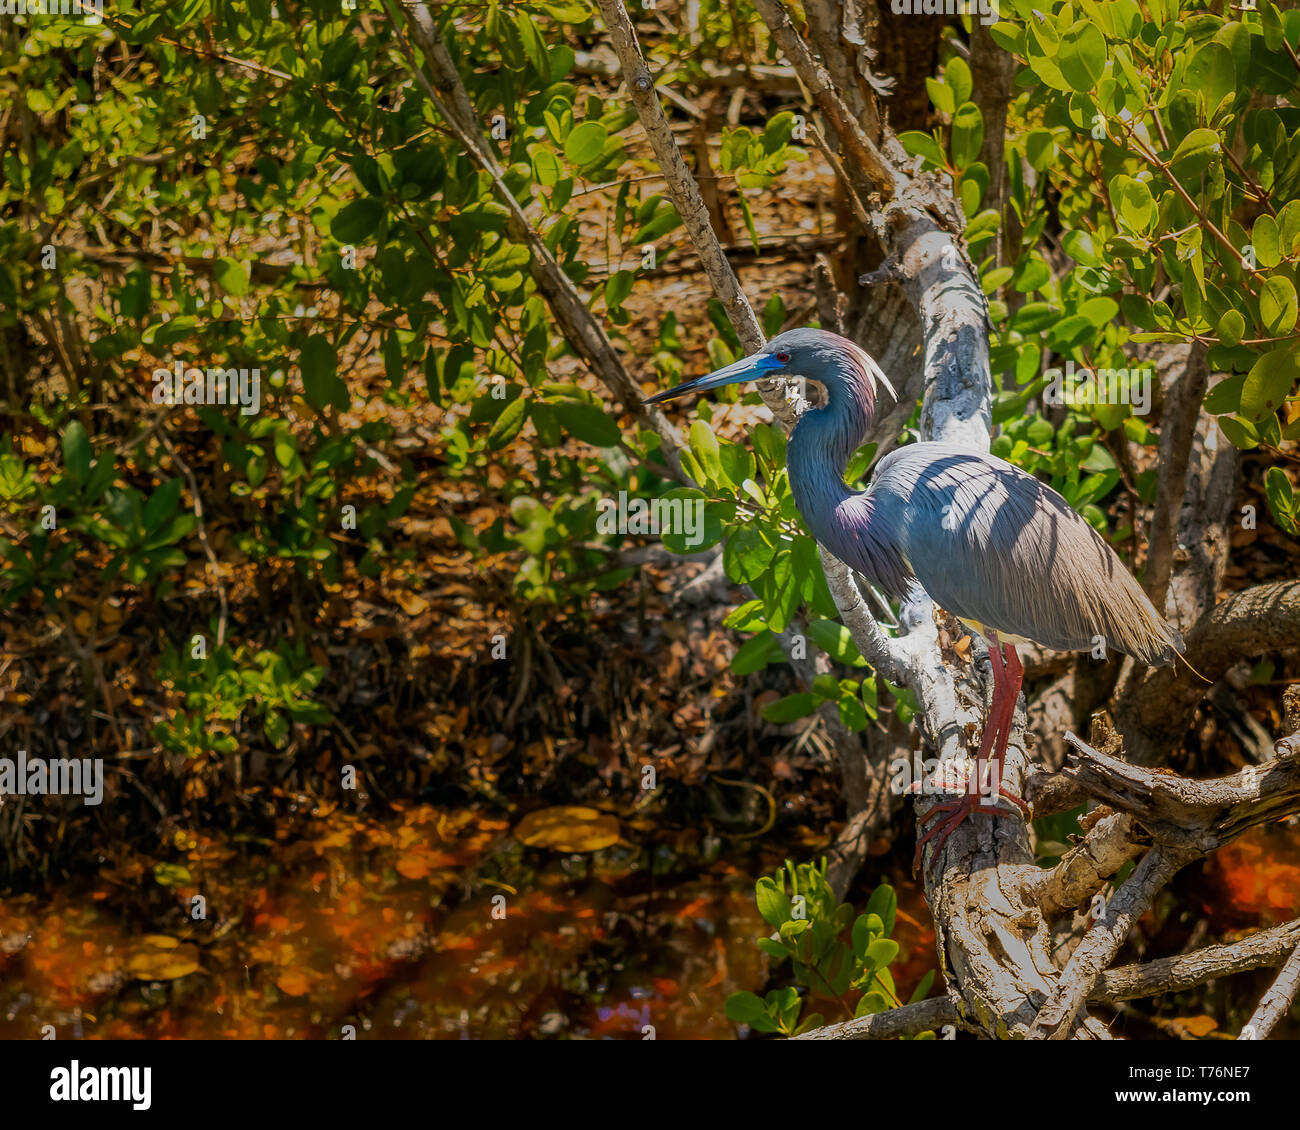 A tricolored heron, also known as a Louisiana heron, as seen in the mangrove forests of the Ding Darling Wildlife Refuge on Sanibel Island, Florida - Stock Image